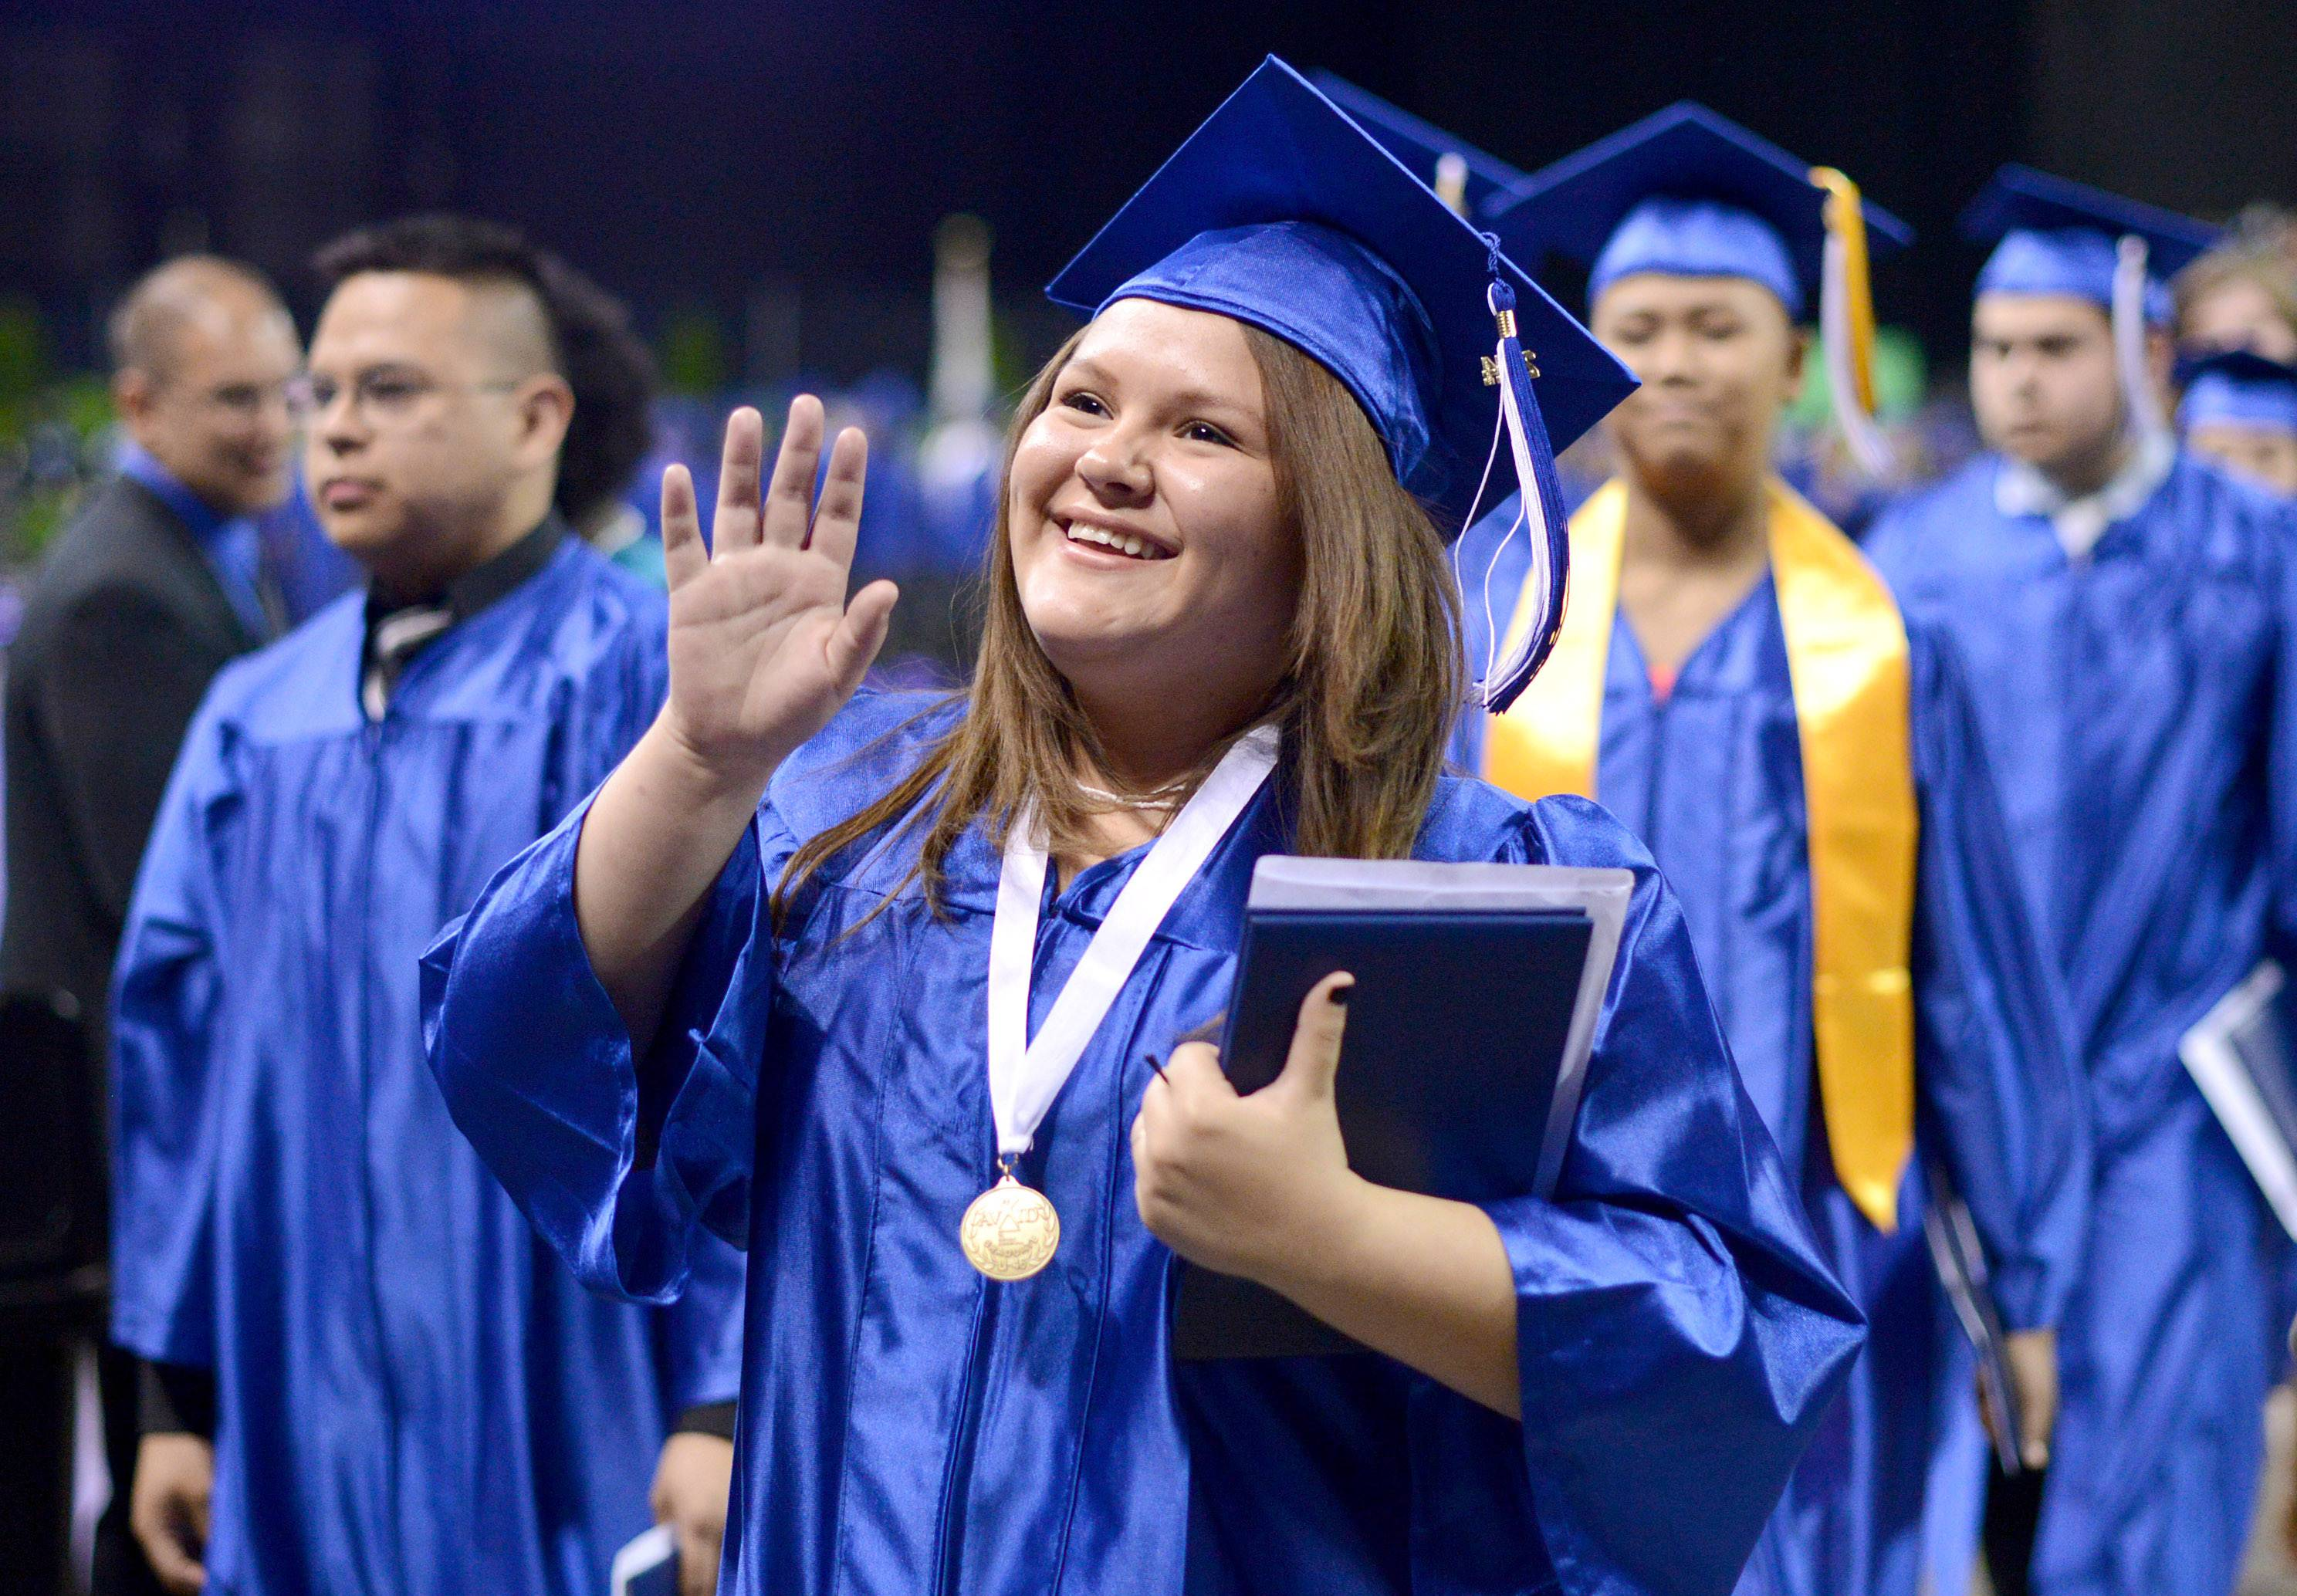 Vanesa Sierra Martinez of Elgin waves to her family in the stands as she exits the floor with diploma in hand at Larkin High School's commencement ceremony at the Sears Centre in Hoffman Estates on Saturday, May 24.